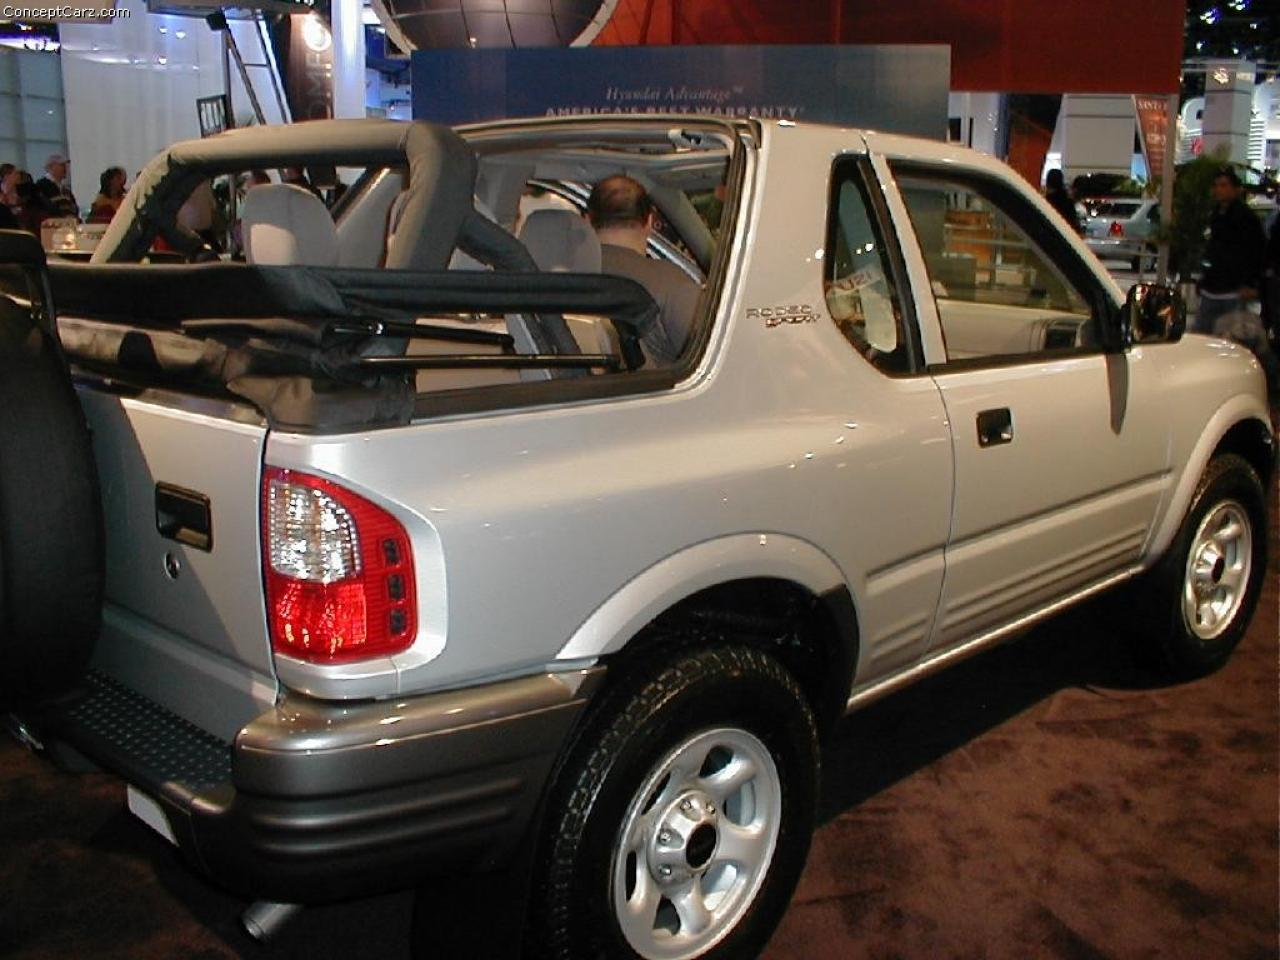 2002 Isuzu Rodeo Sport Information And Photos Zomb Drive